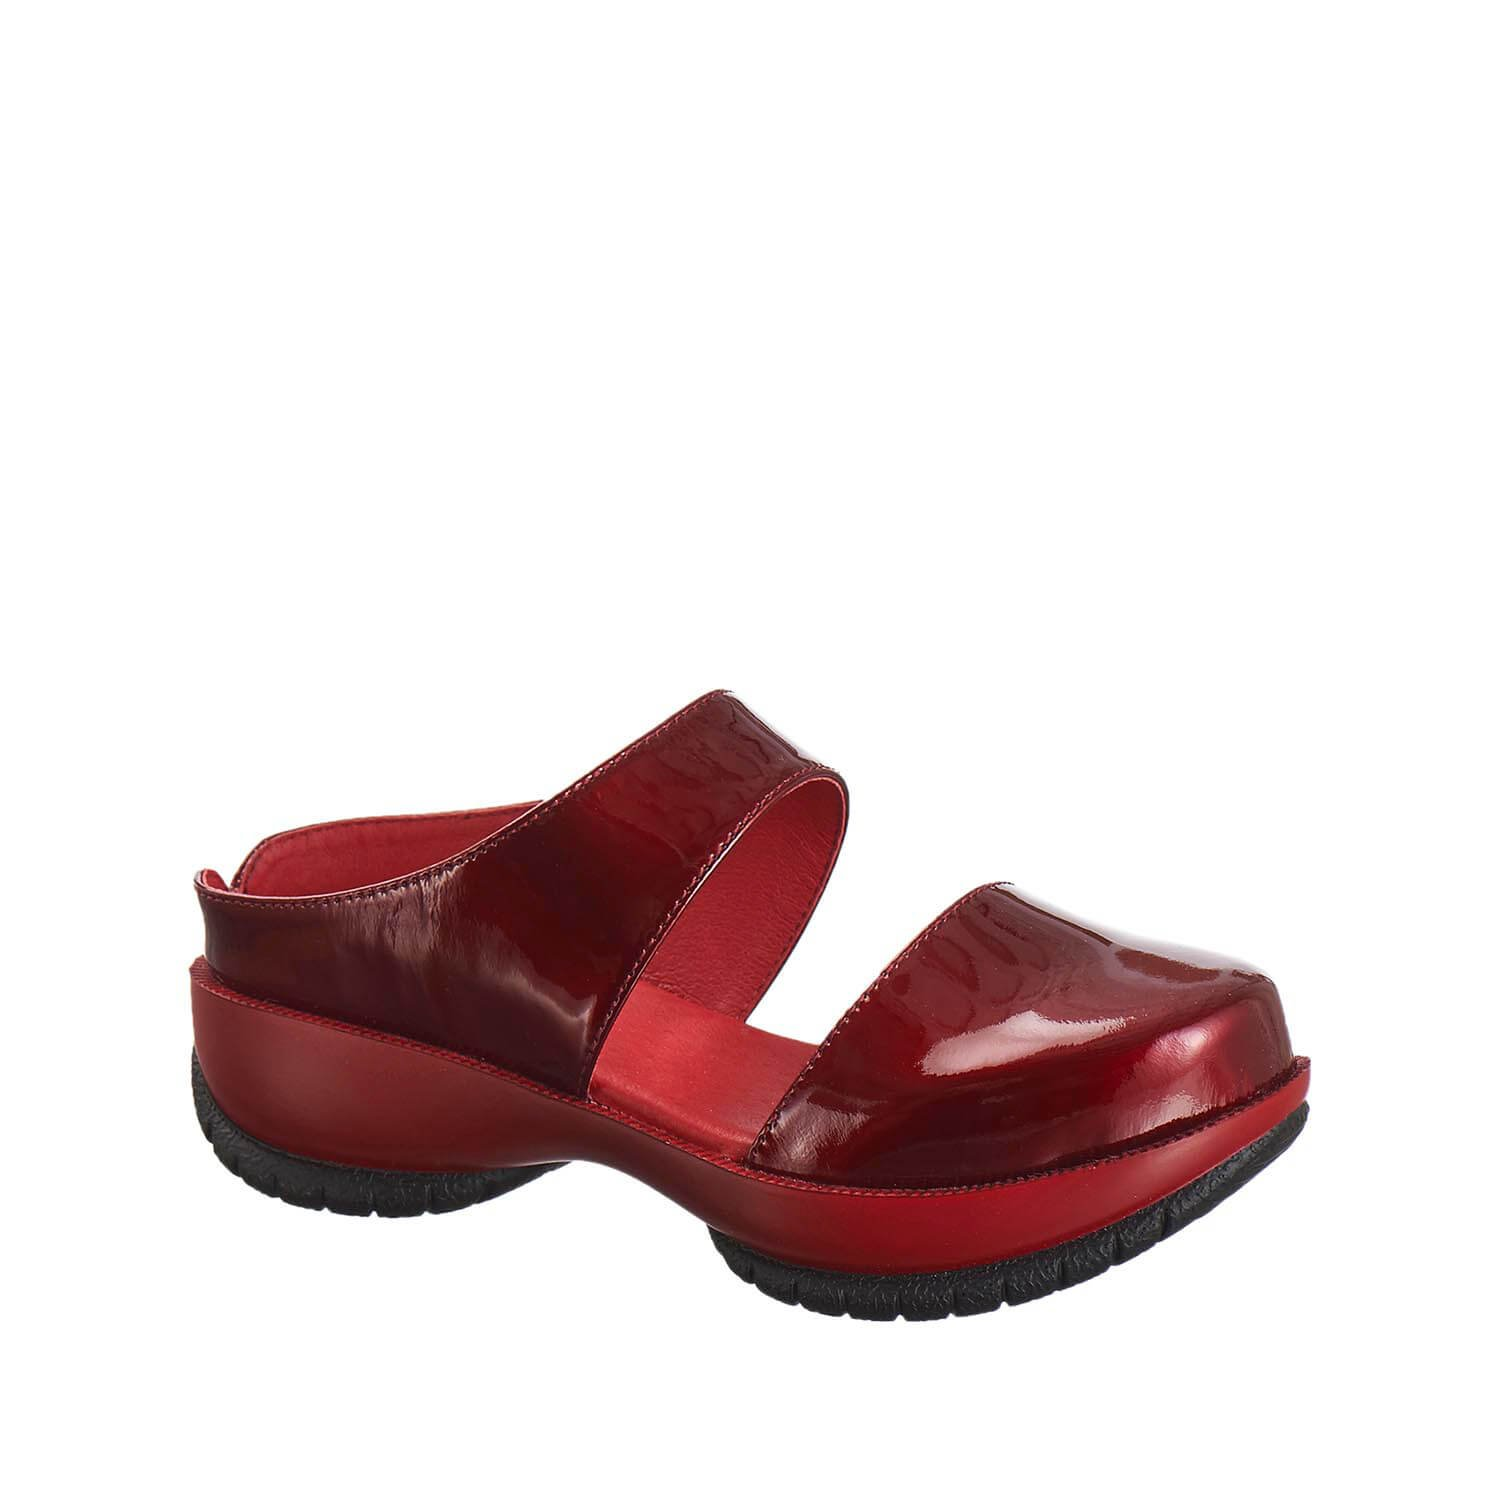 Antelope Women's 302 Patent Leather D'orsay MOD Clogs